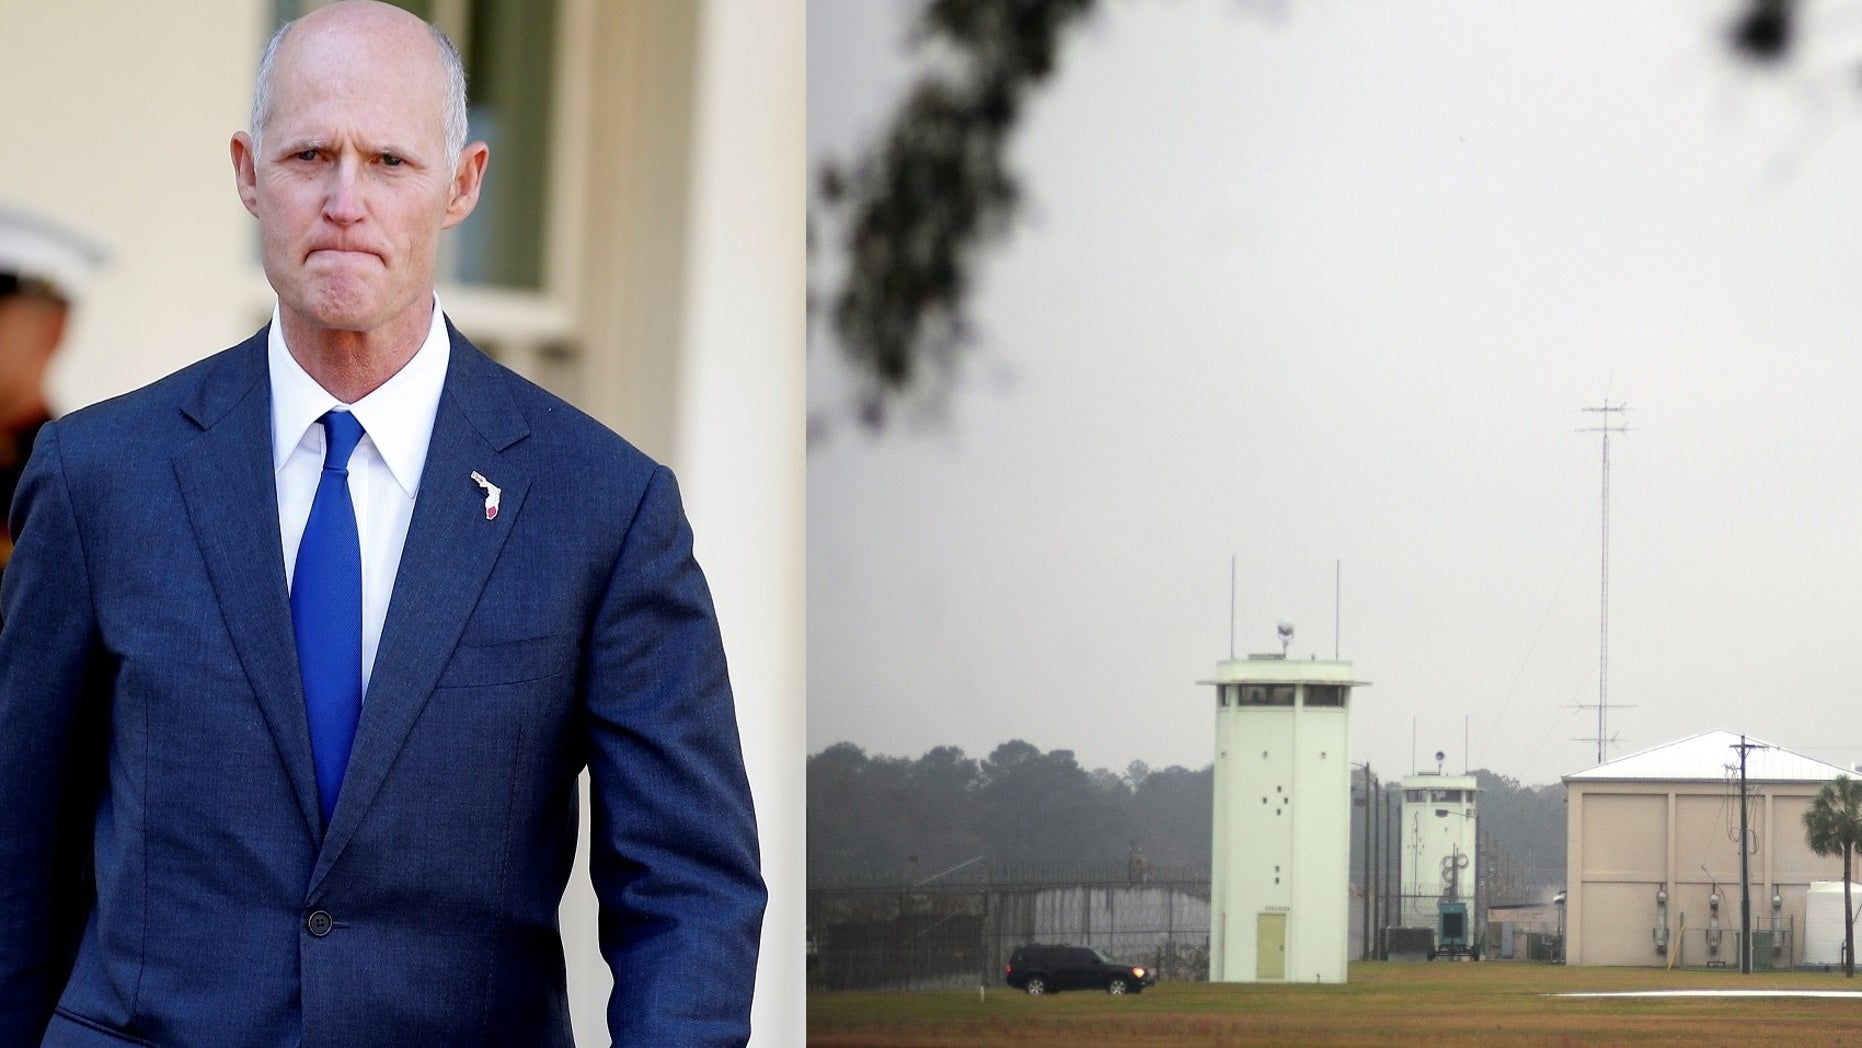 A federal judge ruled that Florida Gov. Rick Scott oversaw the unconstitutional enforcement of a policy barring ex-felons from voting.